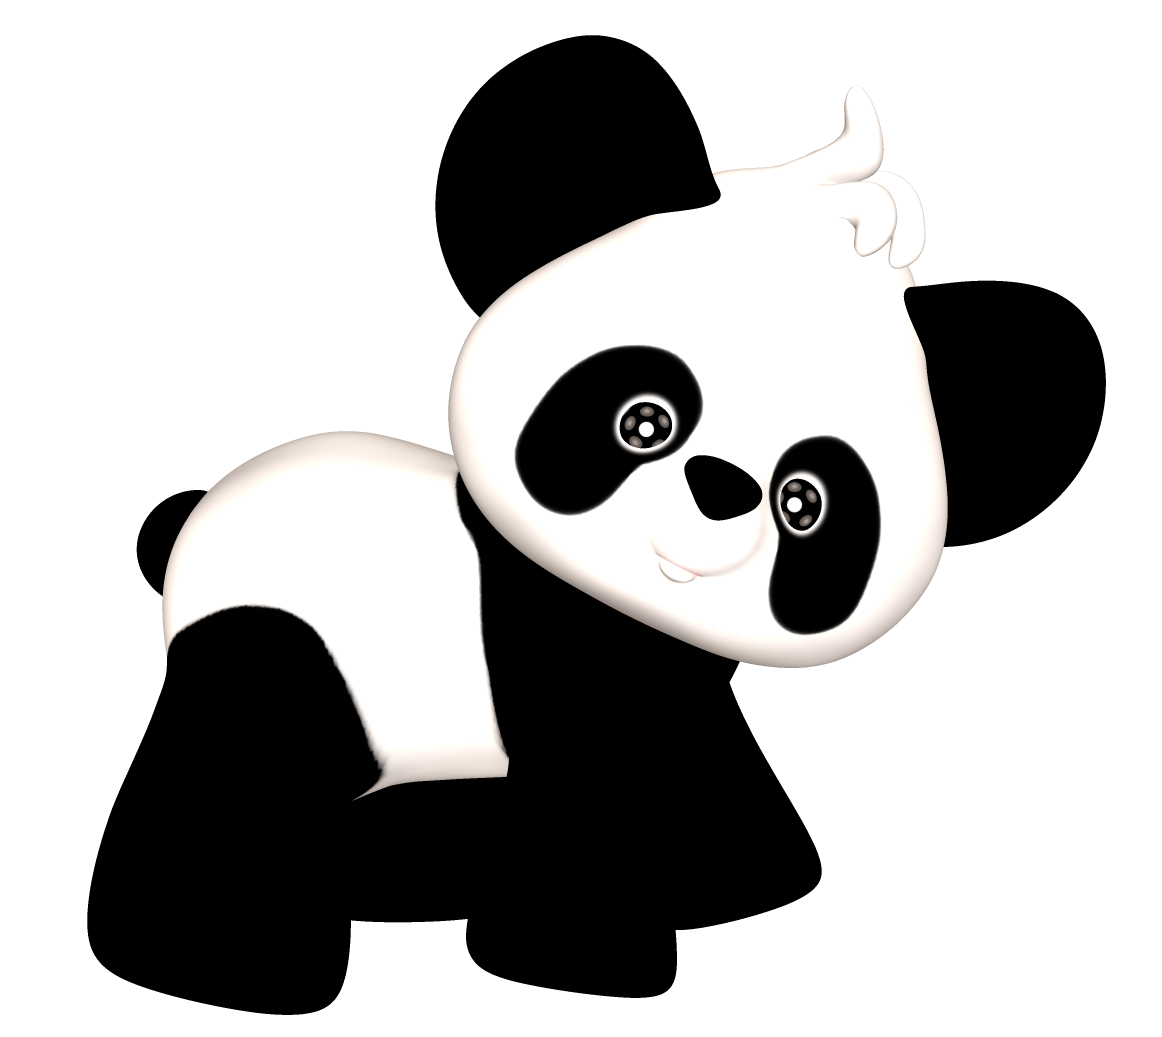 Panda Bear Clipart | Free download best Panda Bear Clipart on